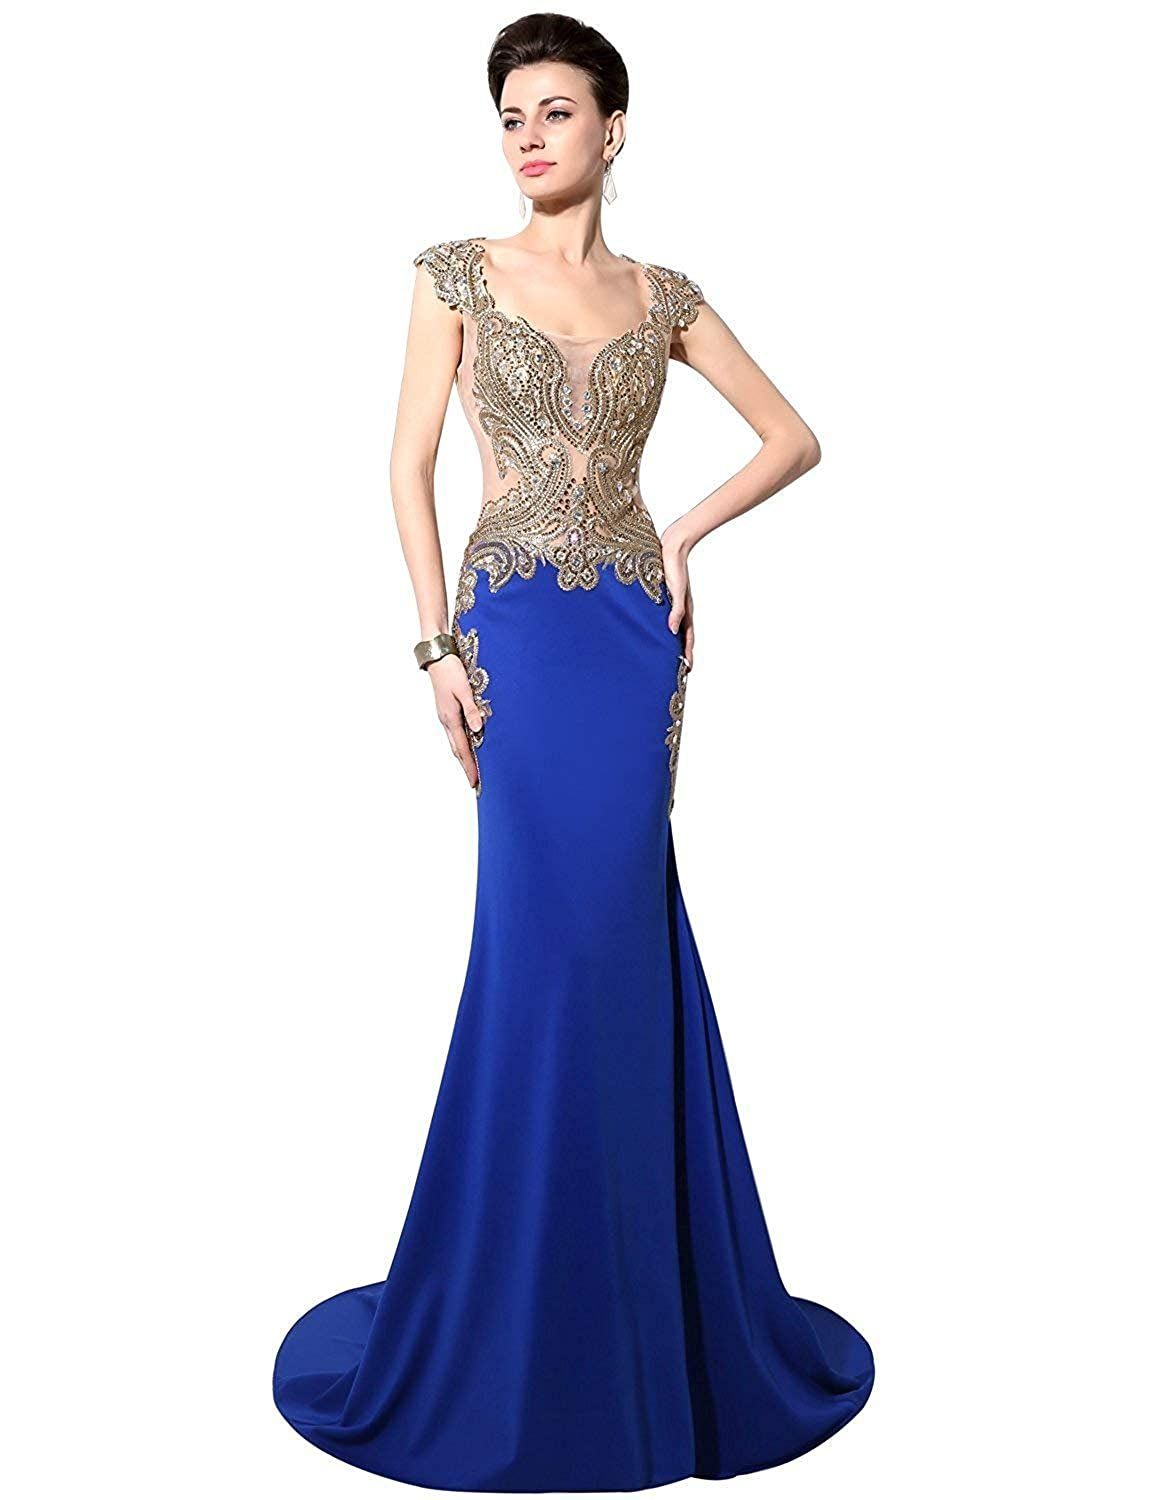 Royal bluee Sarahbridal Women's Mermaid Evening Ball Dress 2019 Formal Long Prom Gowns